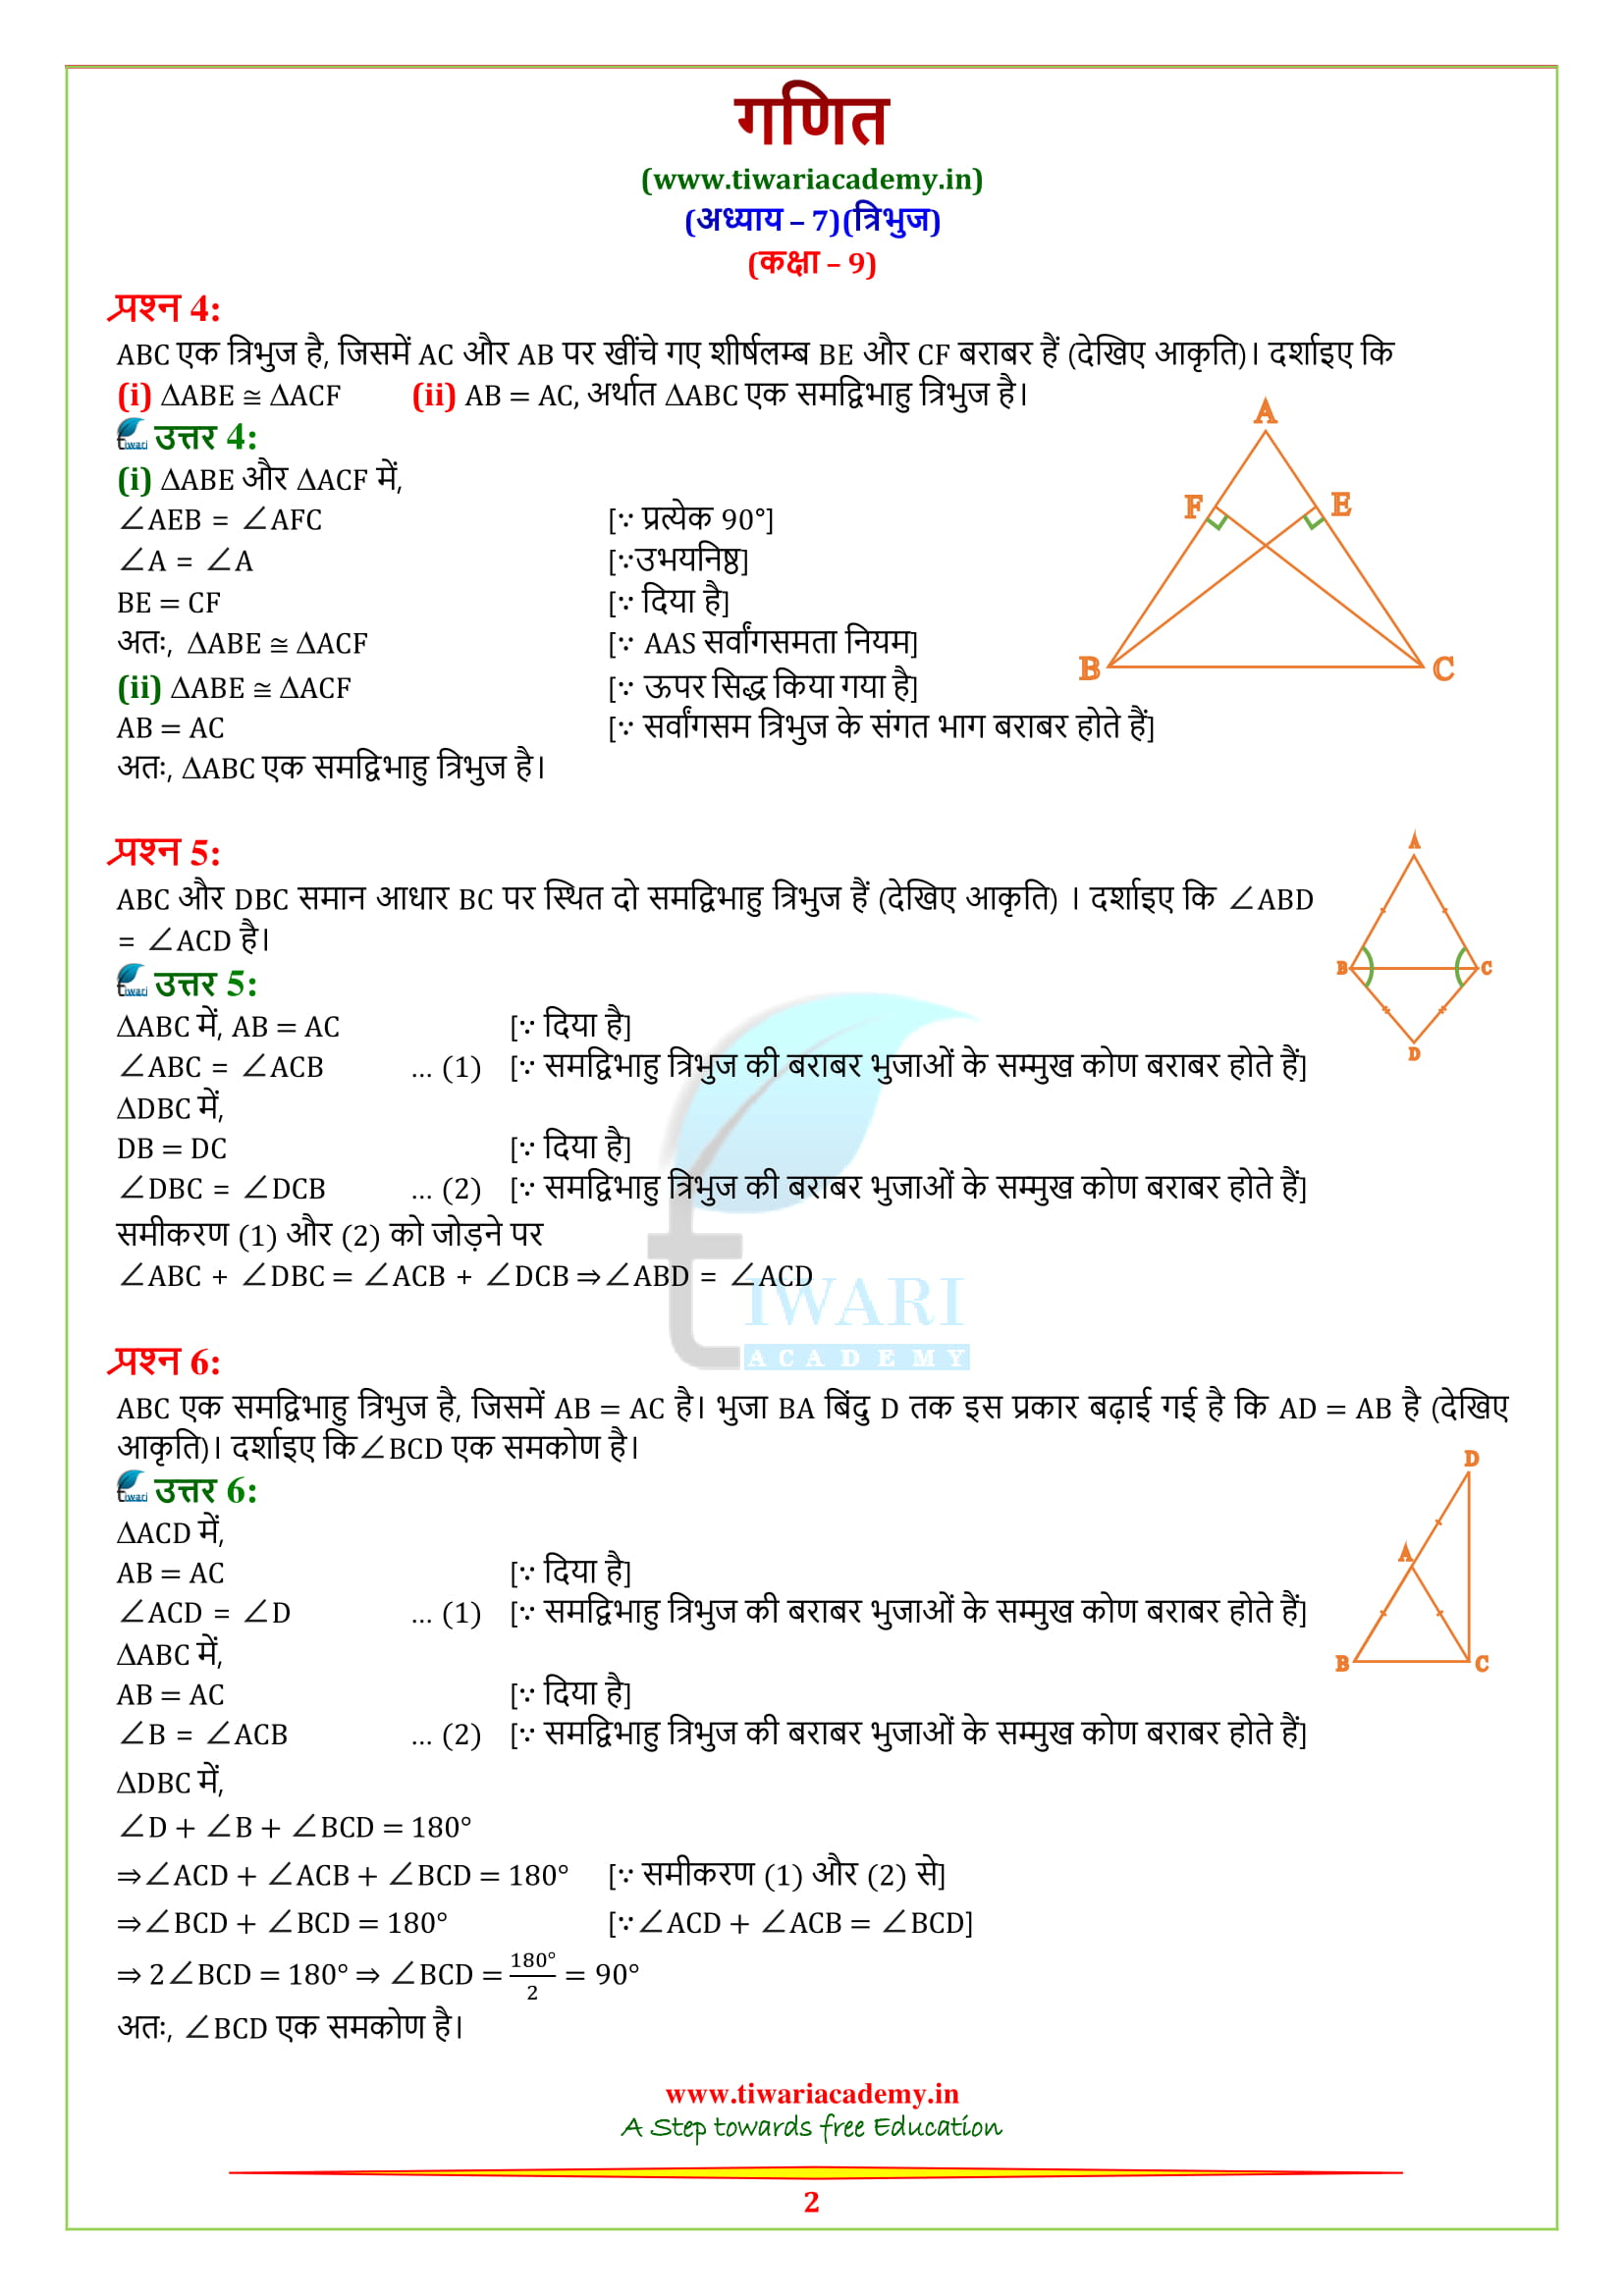 9 Maths Exercise 7.2 solutions all questions guide